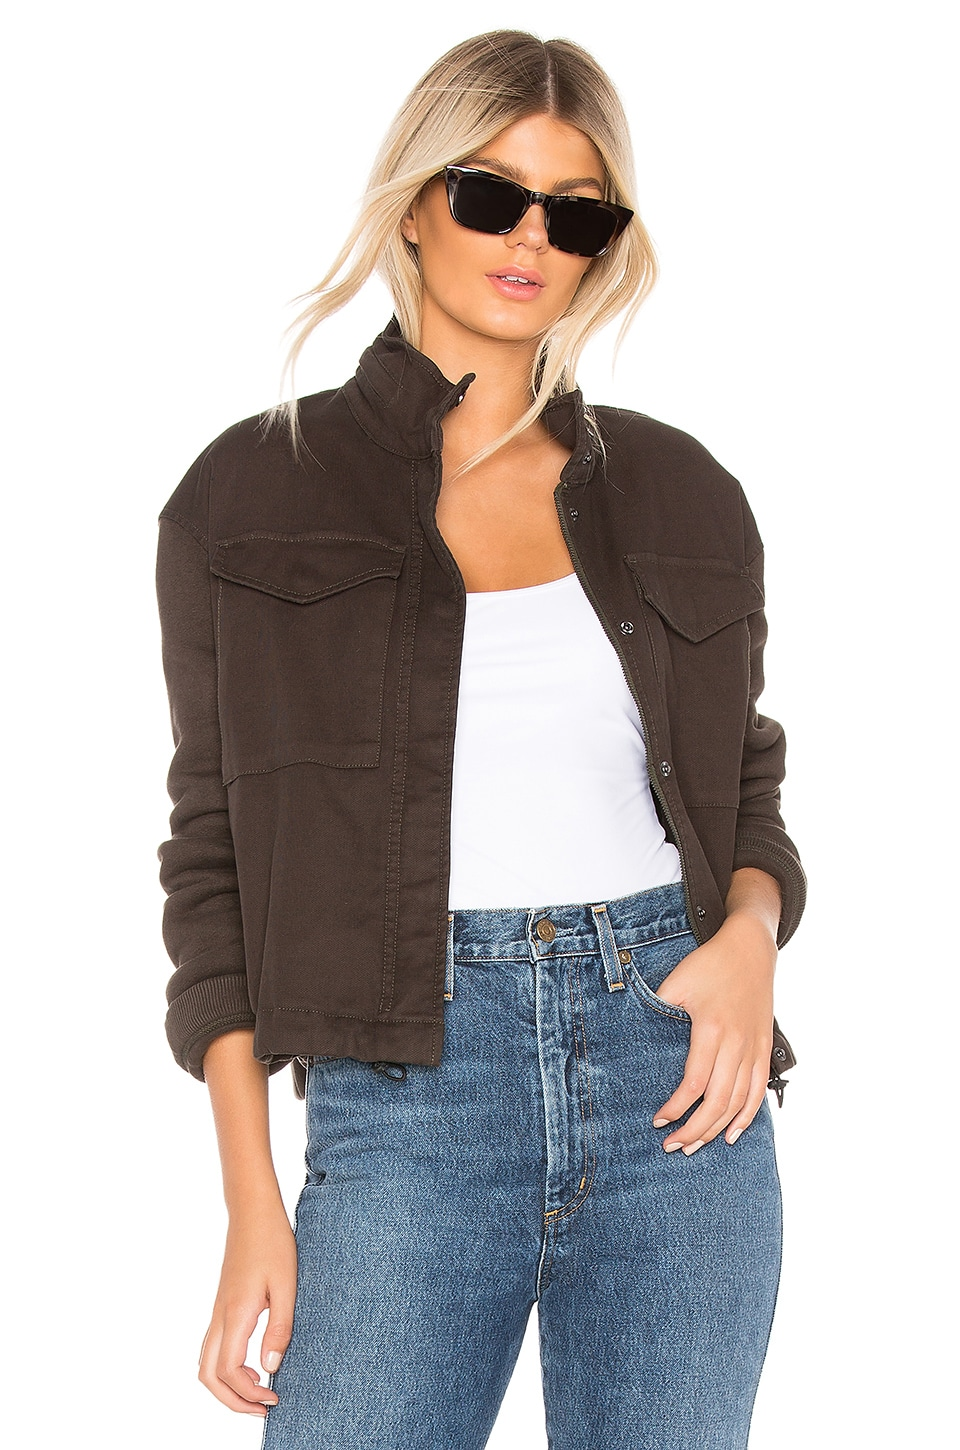 James Perse Crop Army Mixed Media Jacket